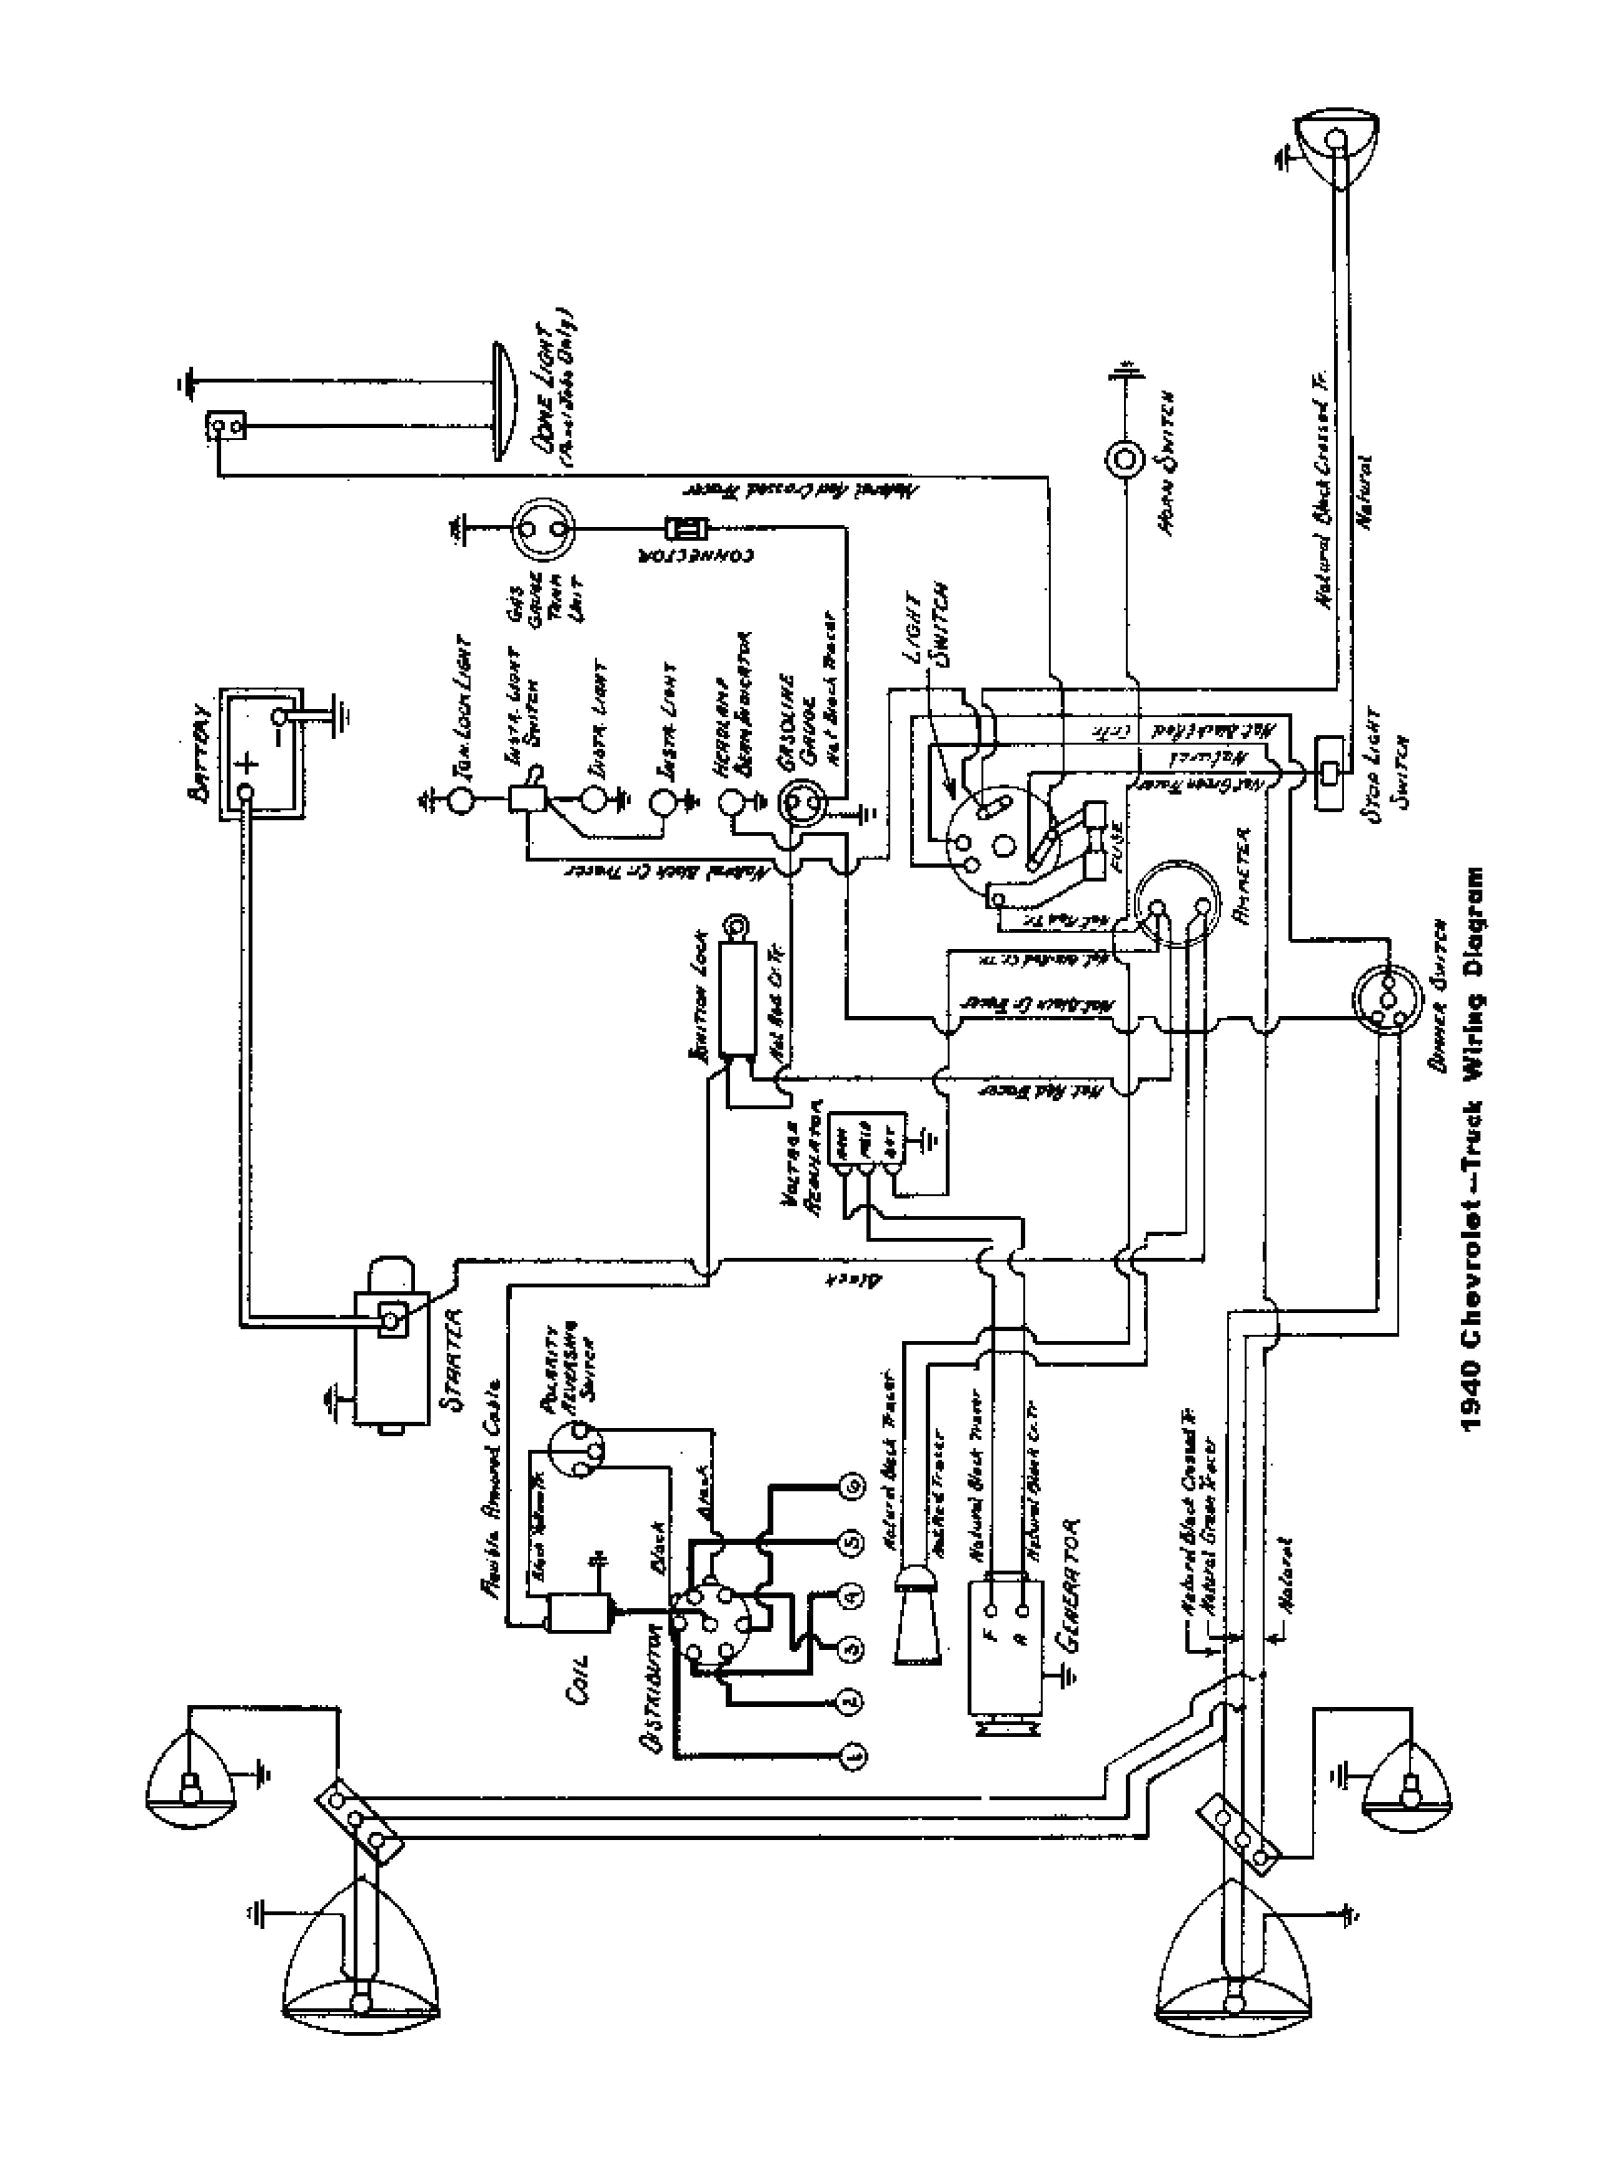 electrical wiring diagram 1954 dodge wiring diagram blog mix 1954 dodge wiring diagram wiring diagram number